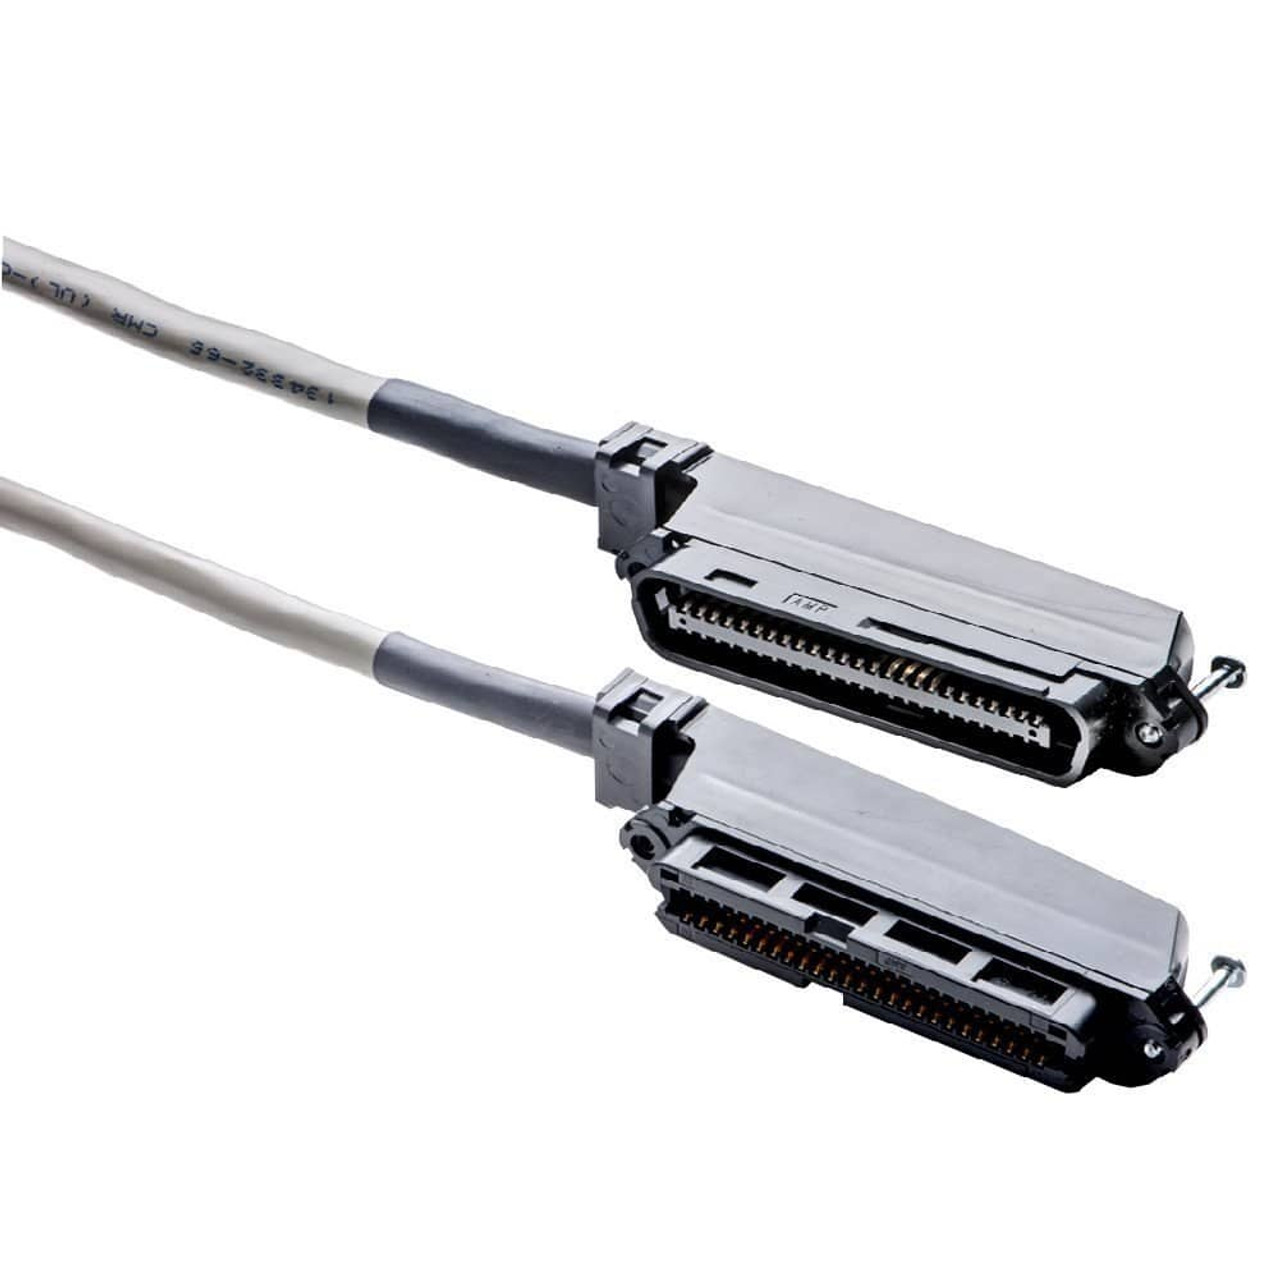 small resolution of punch down blocks gt icc ic066nbc50 66 wiring block 50pair 25pack home gt icc gt 66